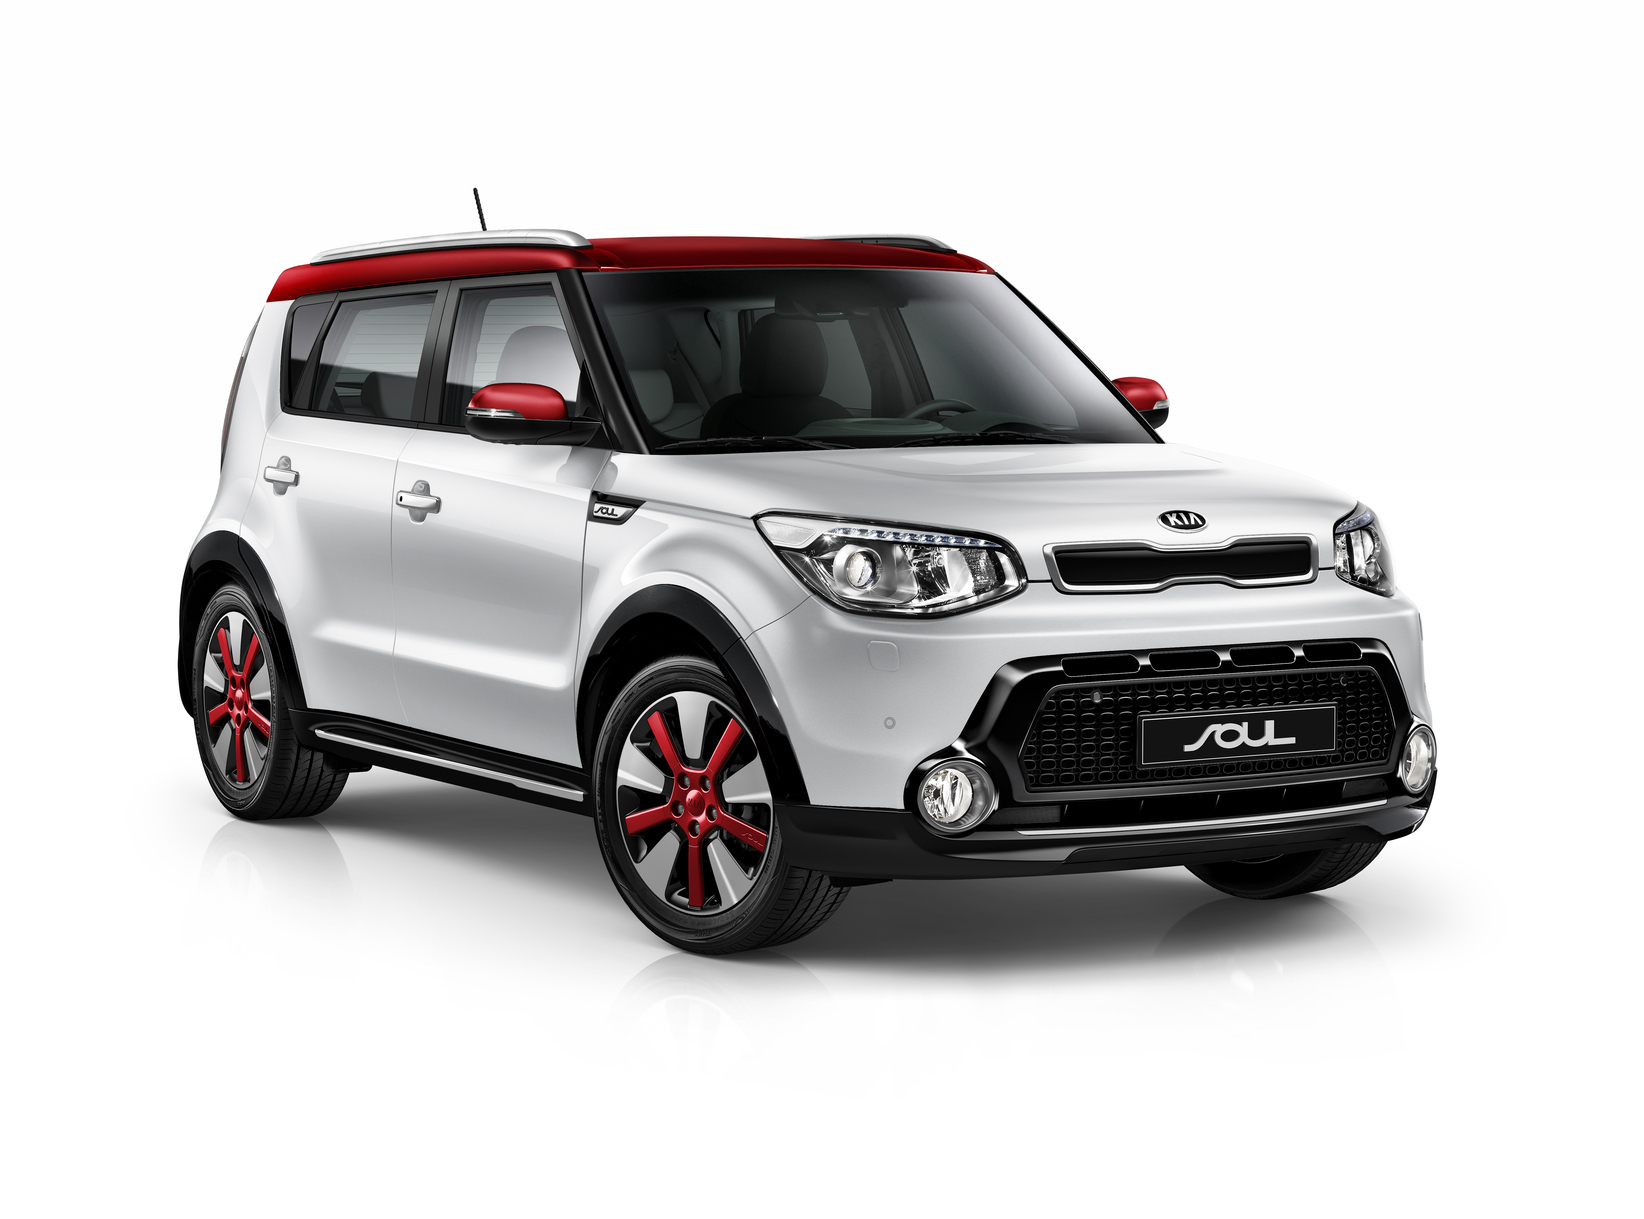 kia_soul_my14_3_4_front_view_(1d_red)_with_suv_pack_5822_27159